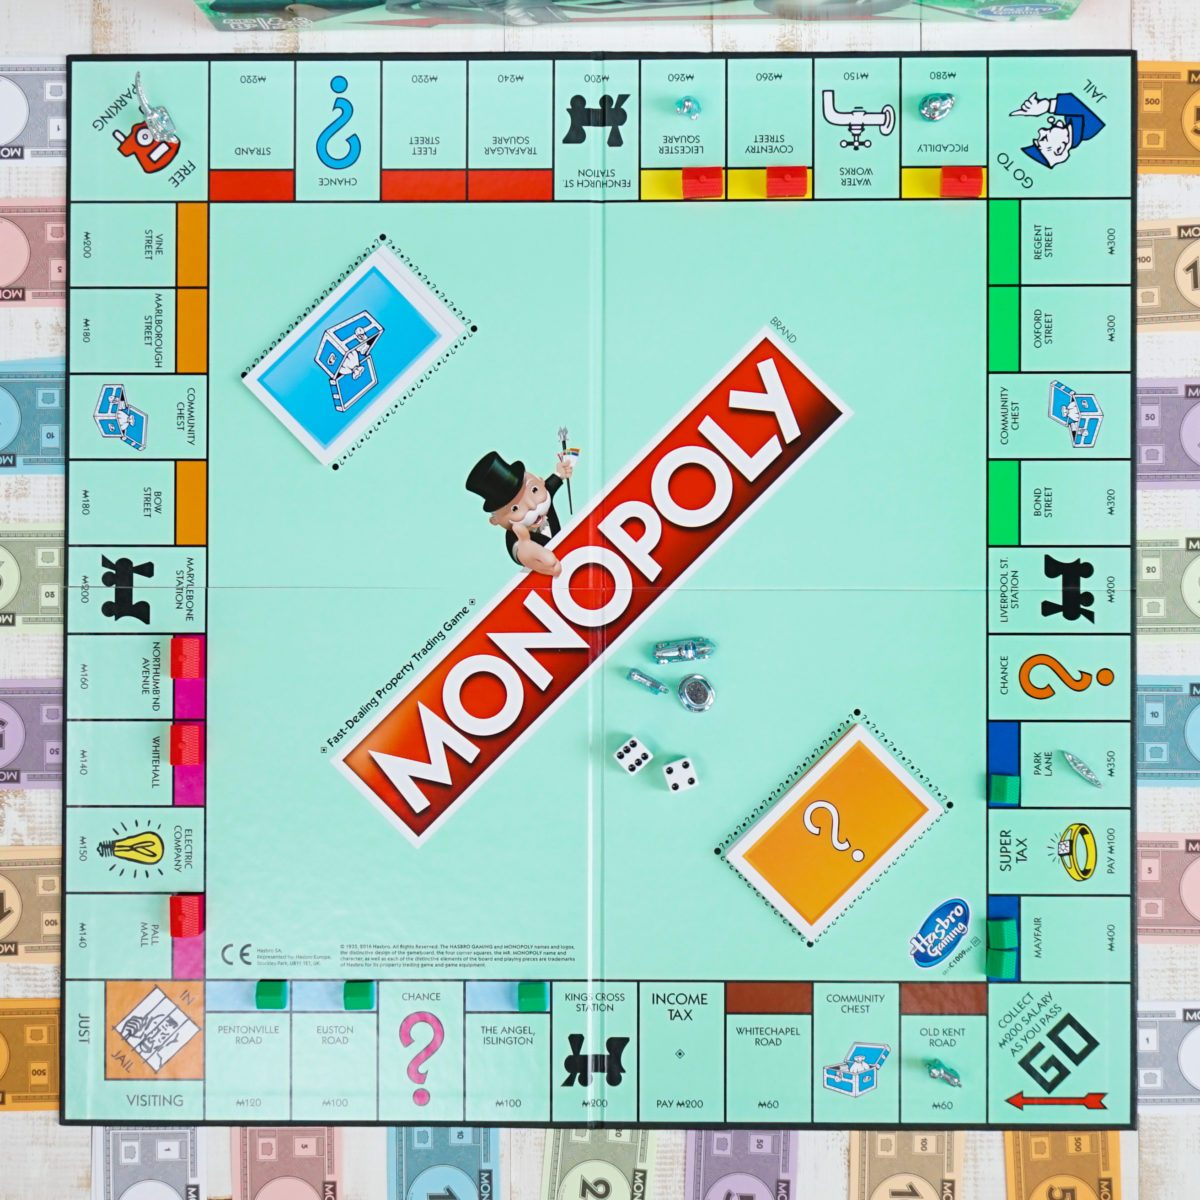 How to Win Monopoly, According to Experts